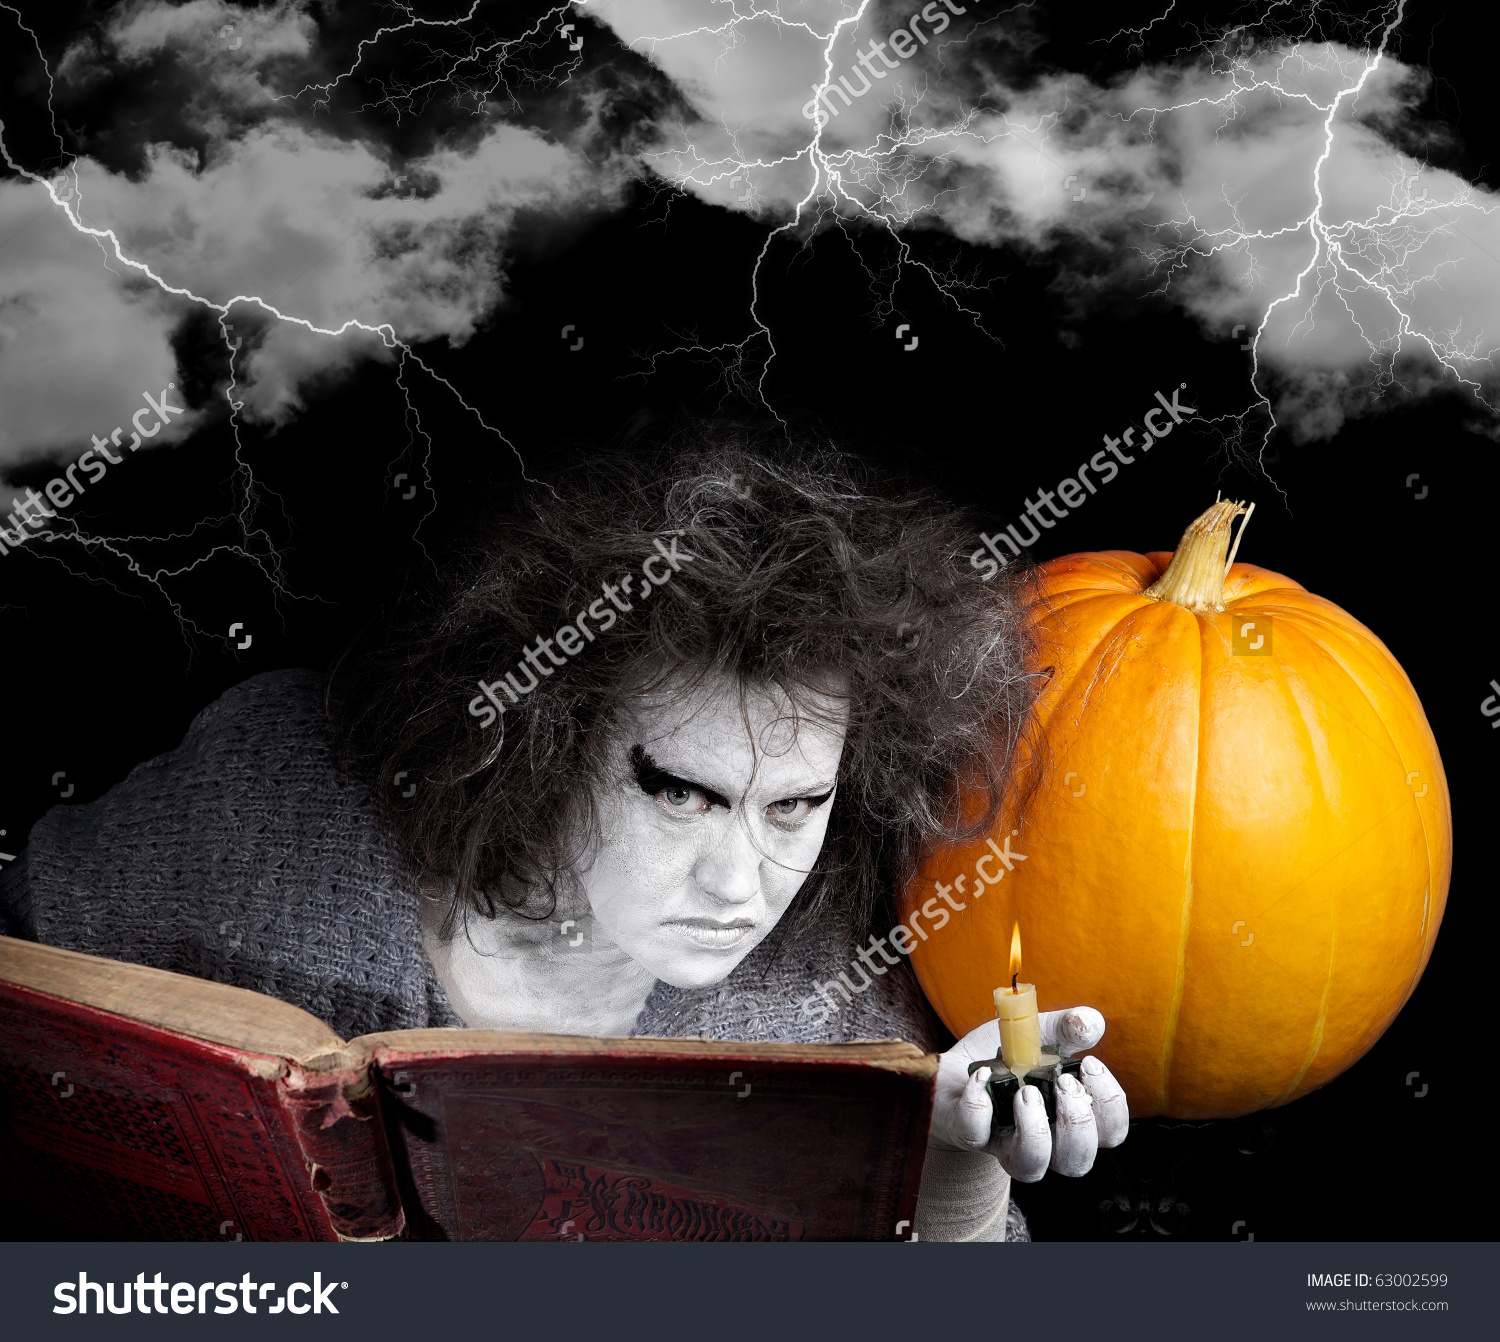 stock-photo-witch-with-a-magic-book-and-pumpkin-halloween-theme-63002599